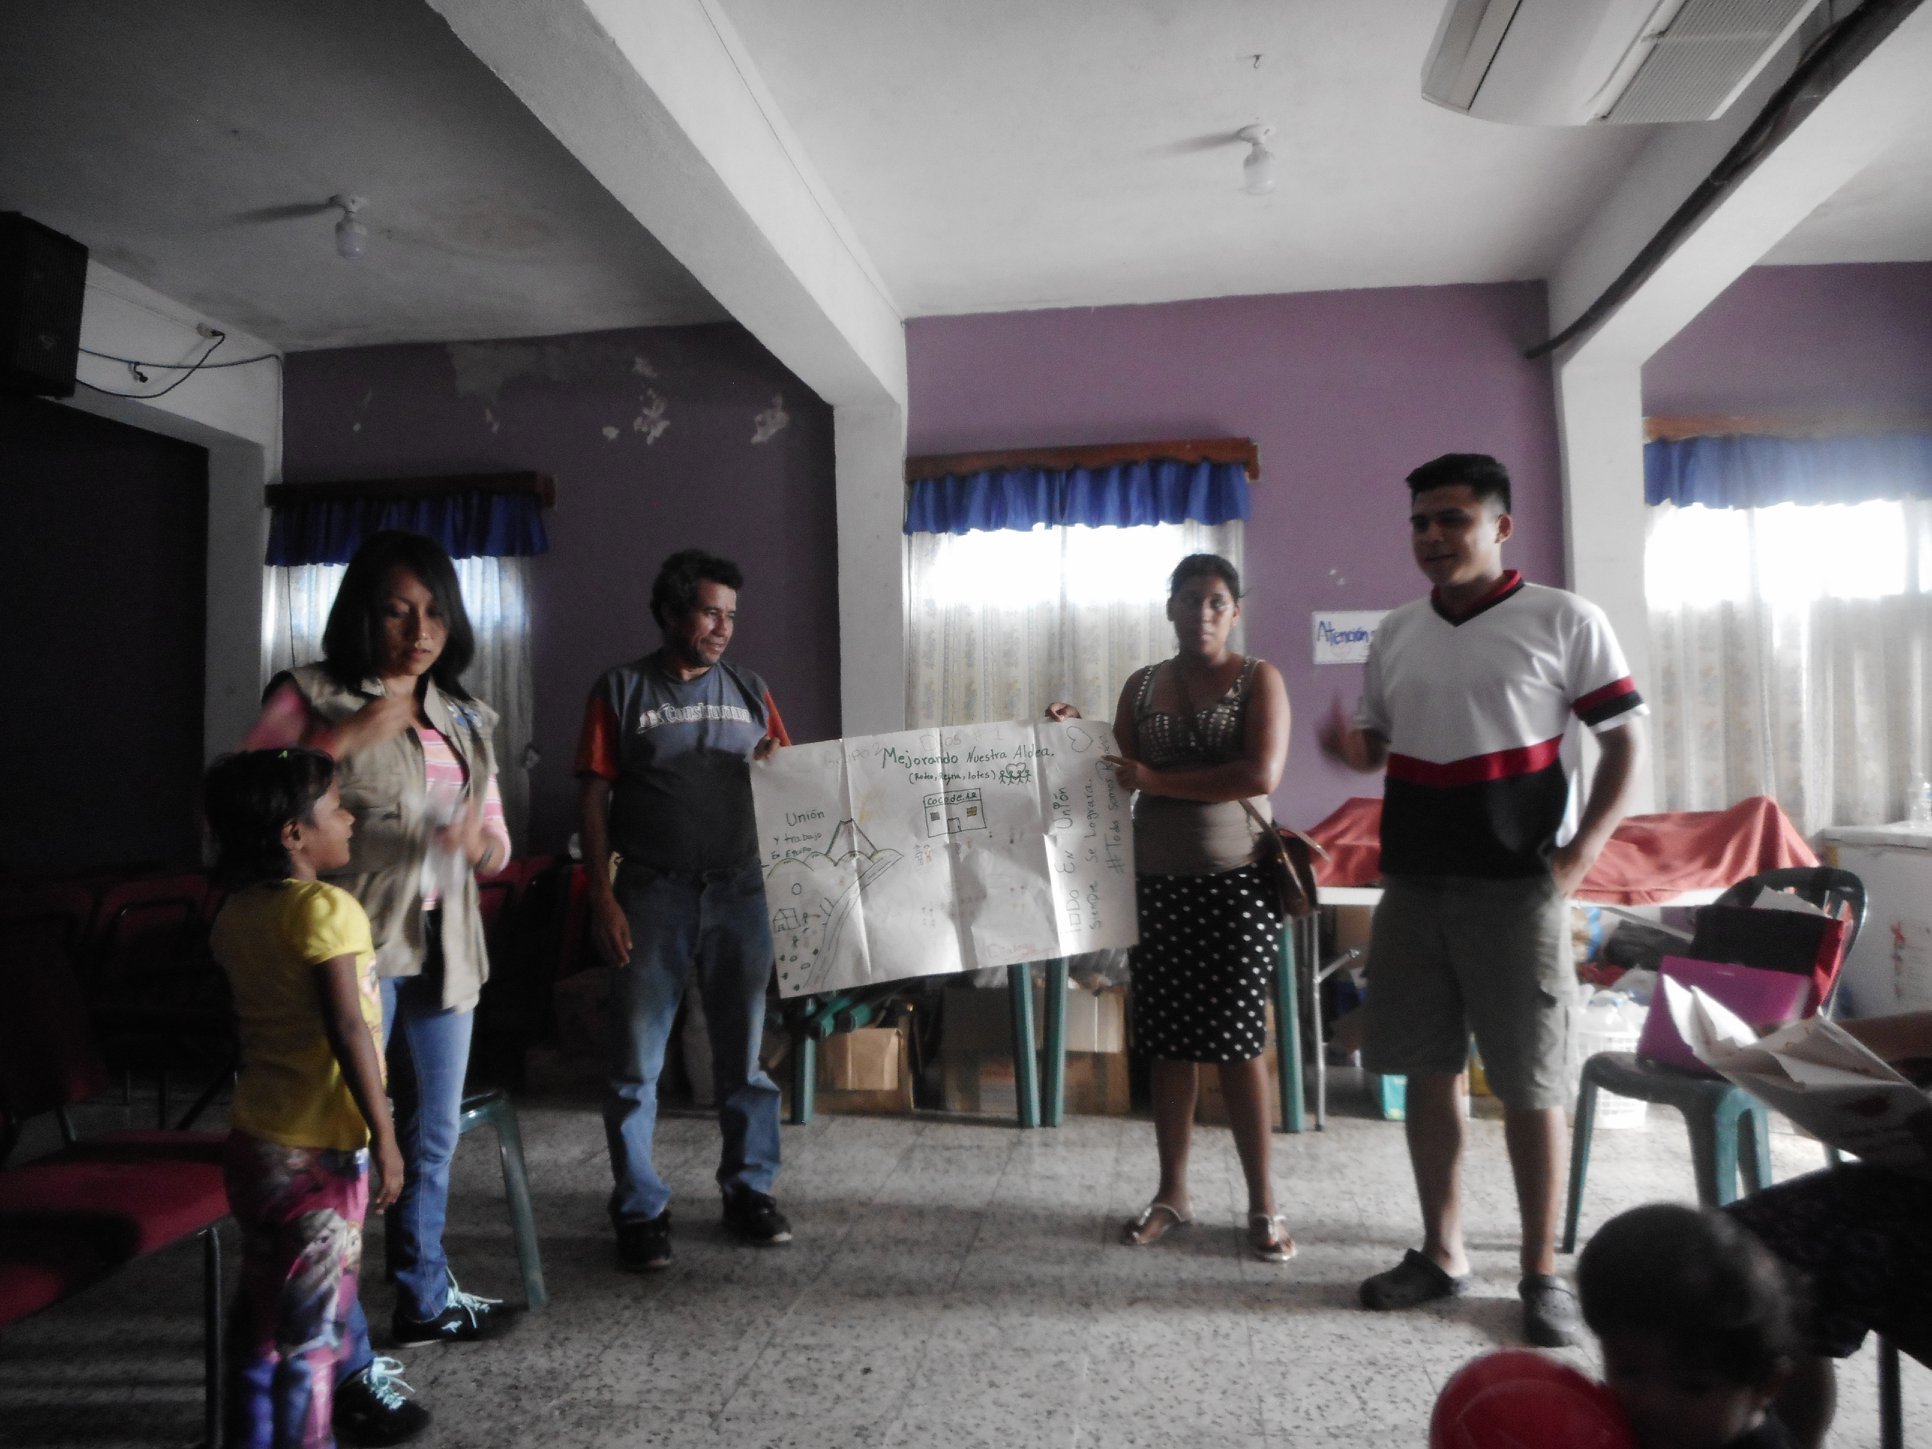 """Survivors of the volcanic eruption participate in a """"mapping"""" exercise to improve communications and services in their community as part of CEDEPCA's psychosocial work."""